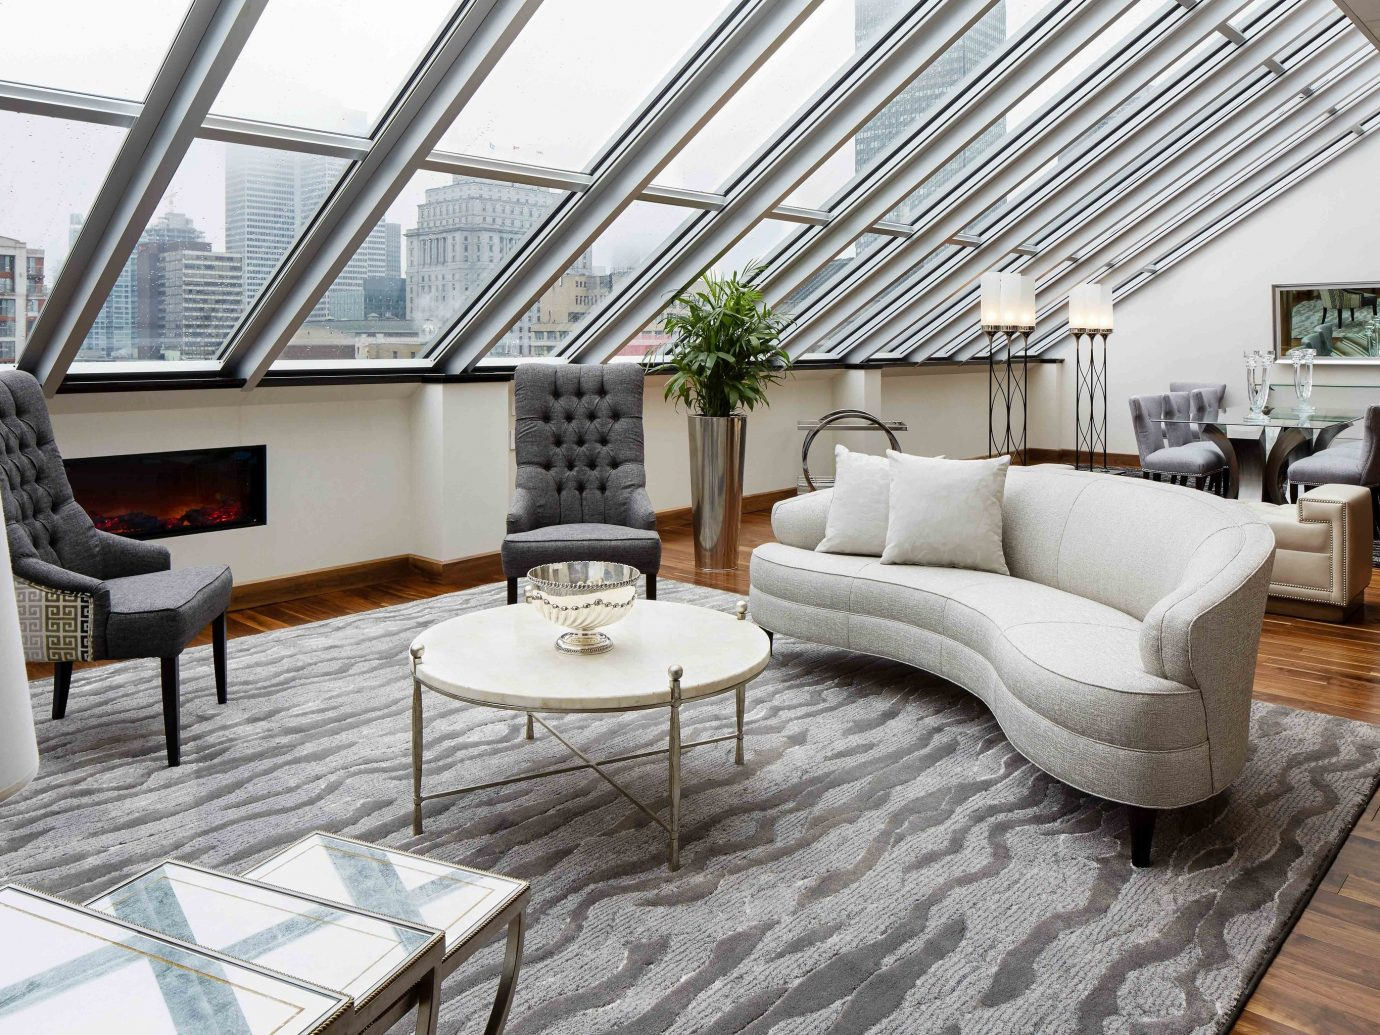 Canada Hotels Montreal Trip Ideas floor indoor Living room chair living room property Architecture interior design furniture real estate daylighting window penthouse apartment table loft roof house angle estate apartment flooring interior designer area